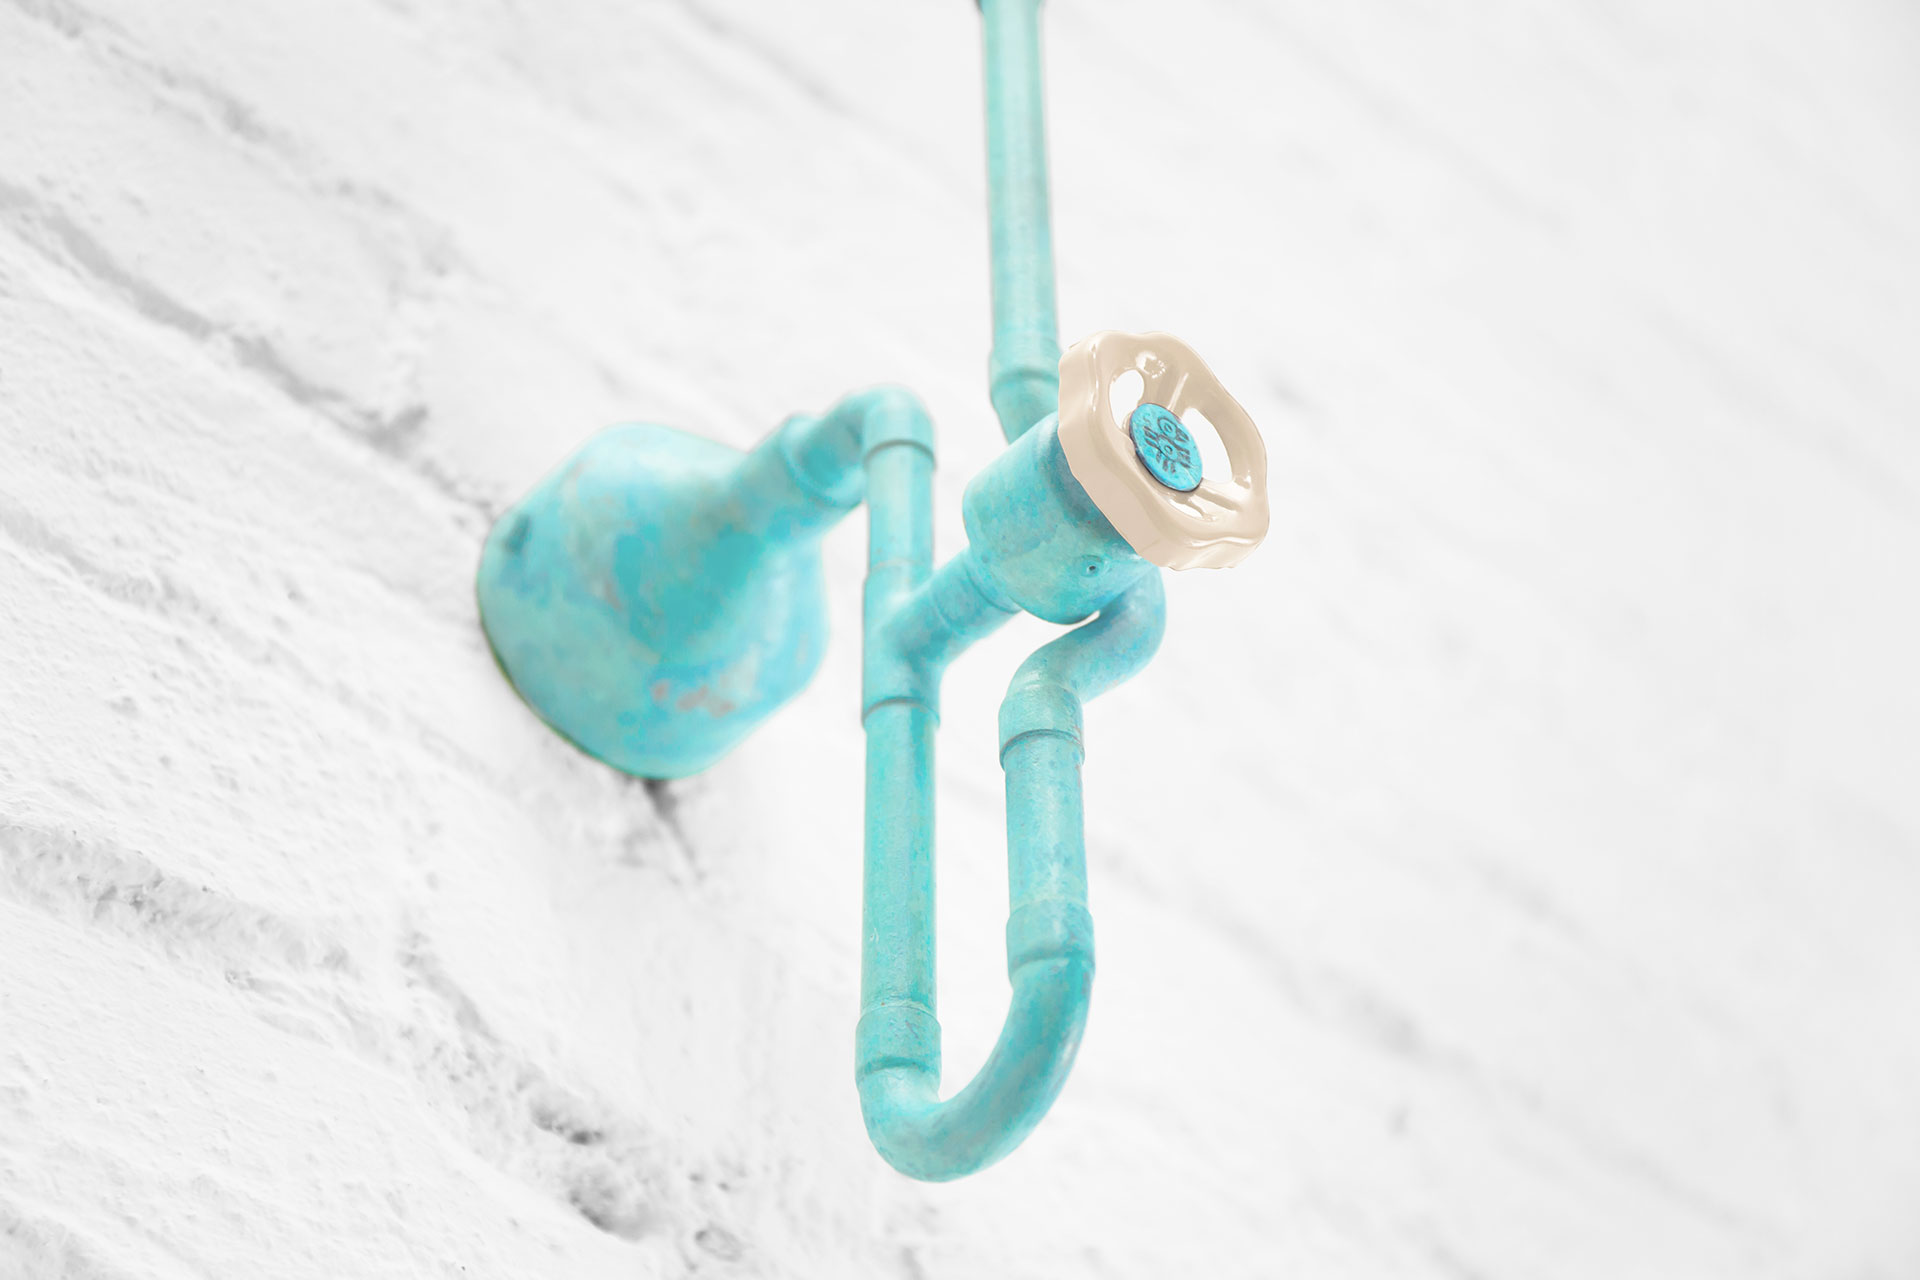 Cool dimmable sconce in turquoise patina inspired by industrial design